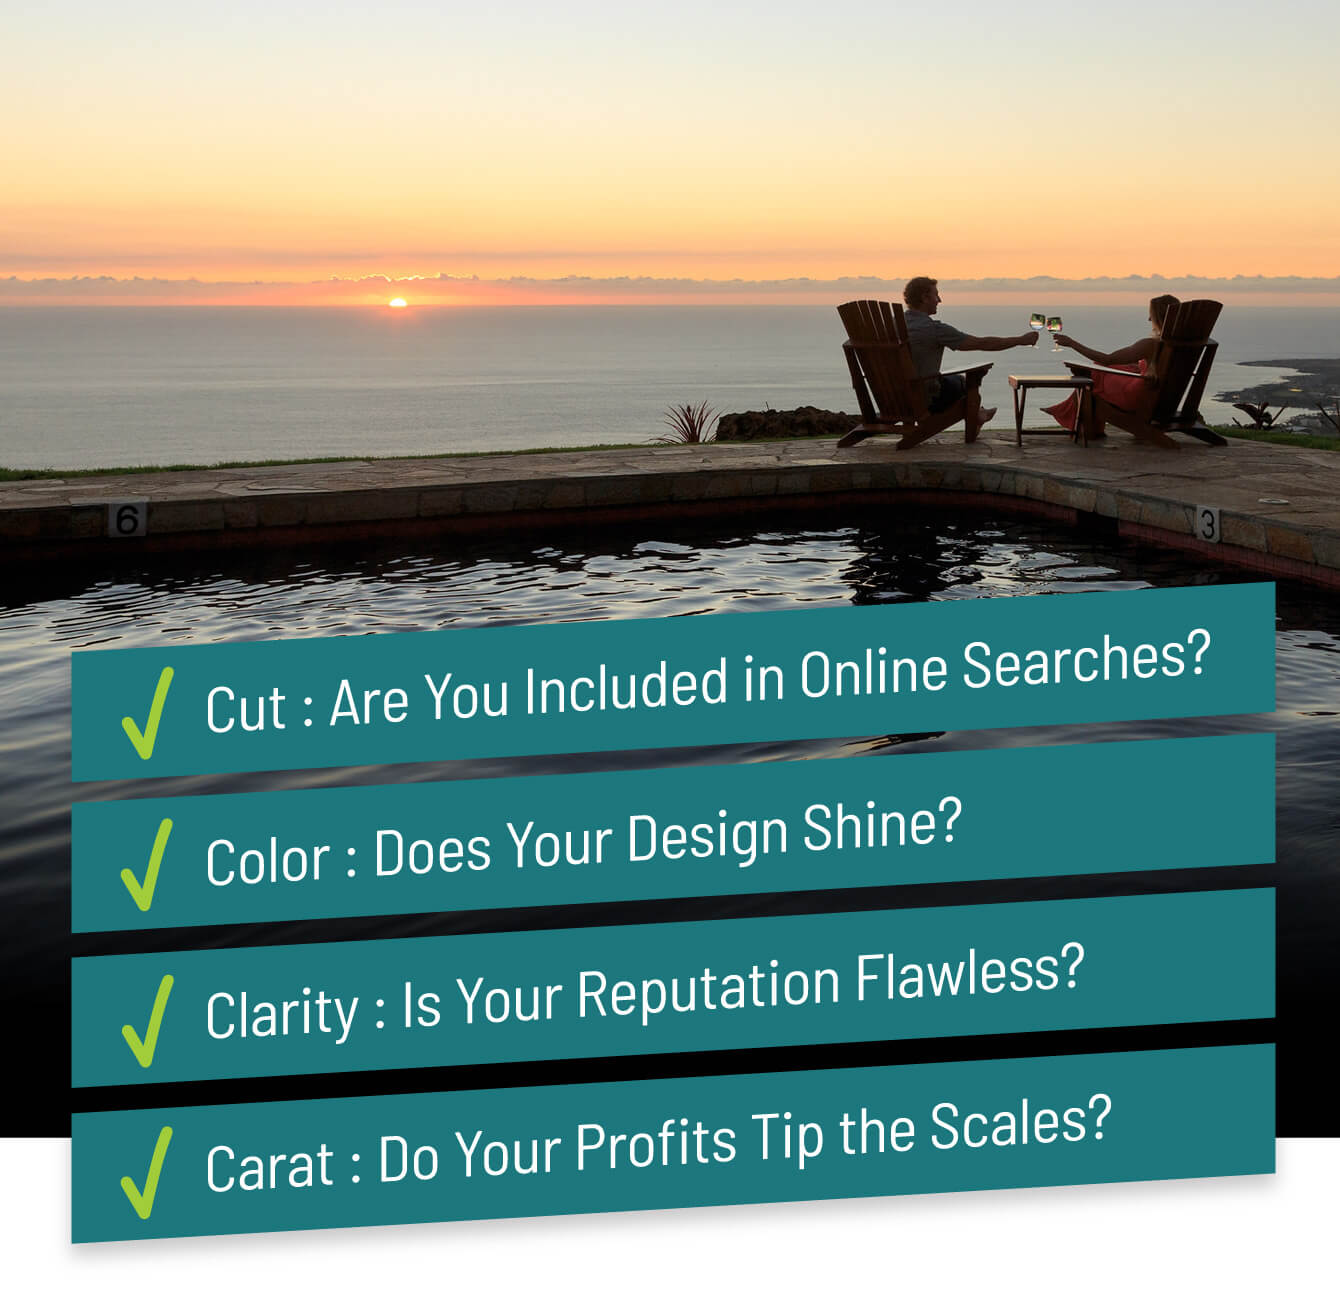 the 4-Cs of online marketing